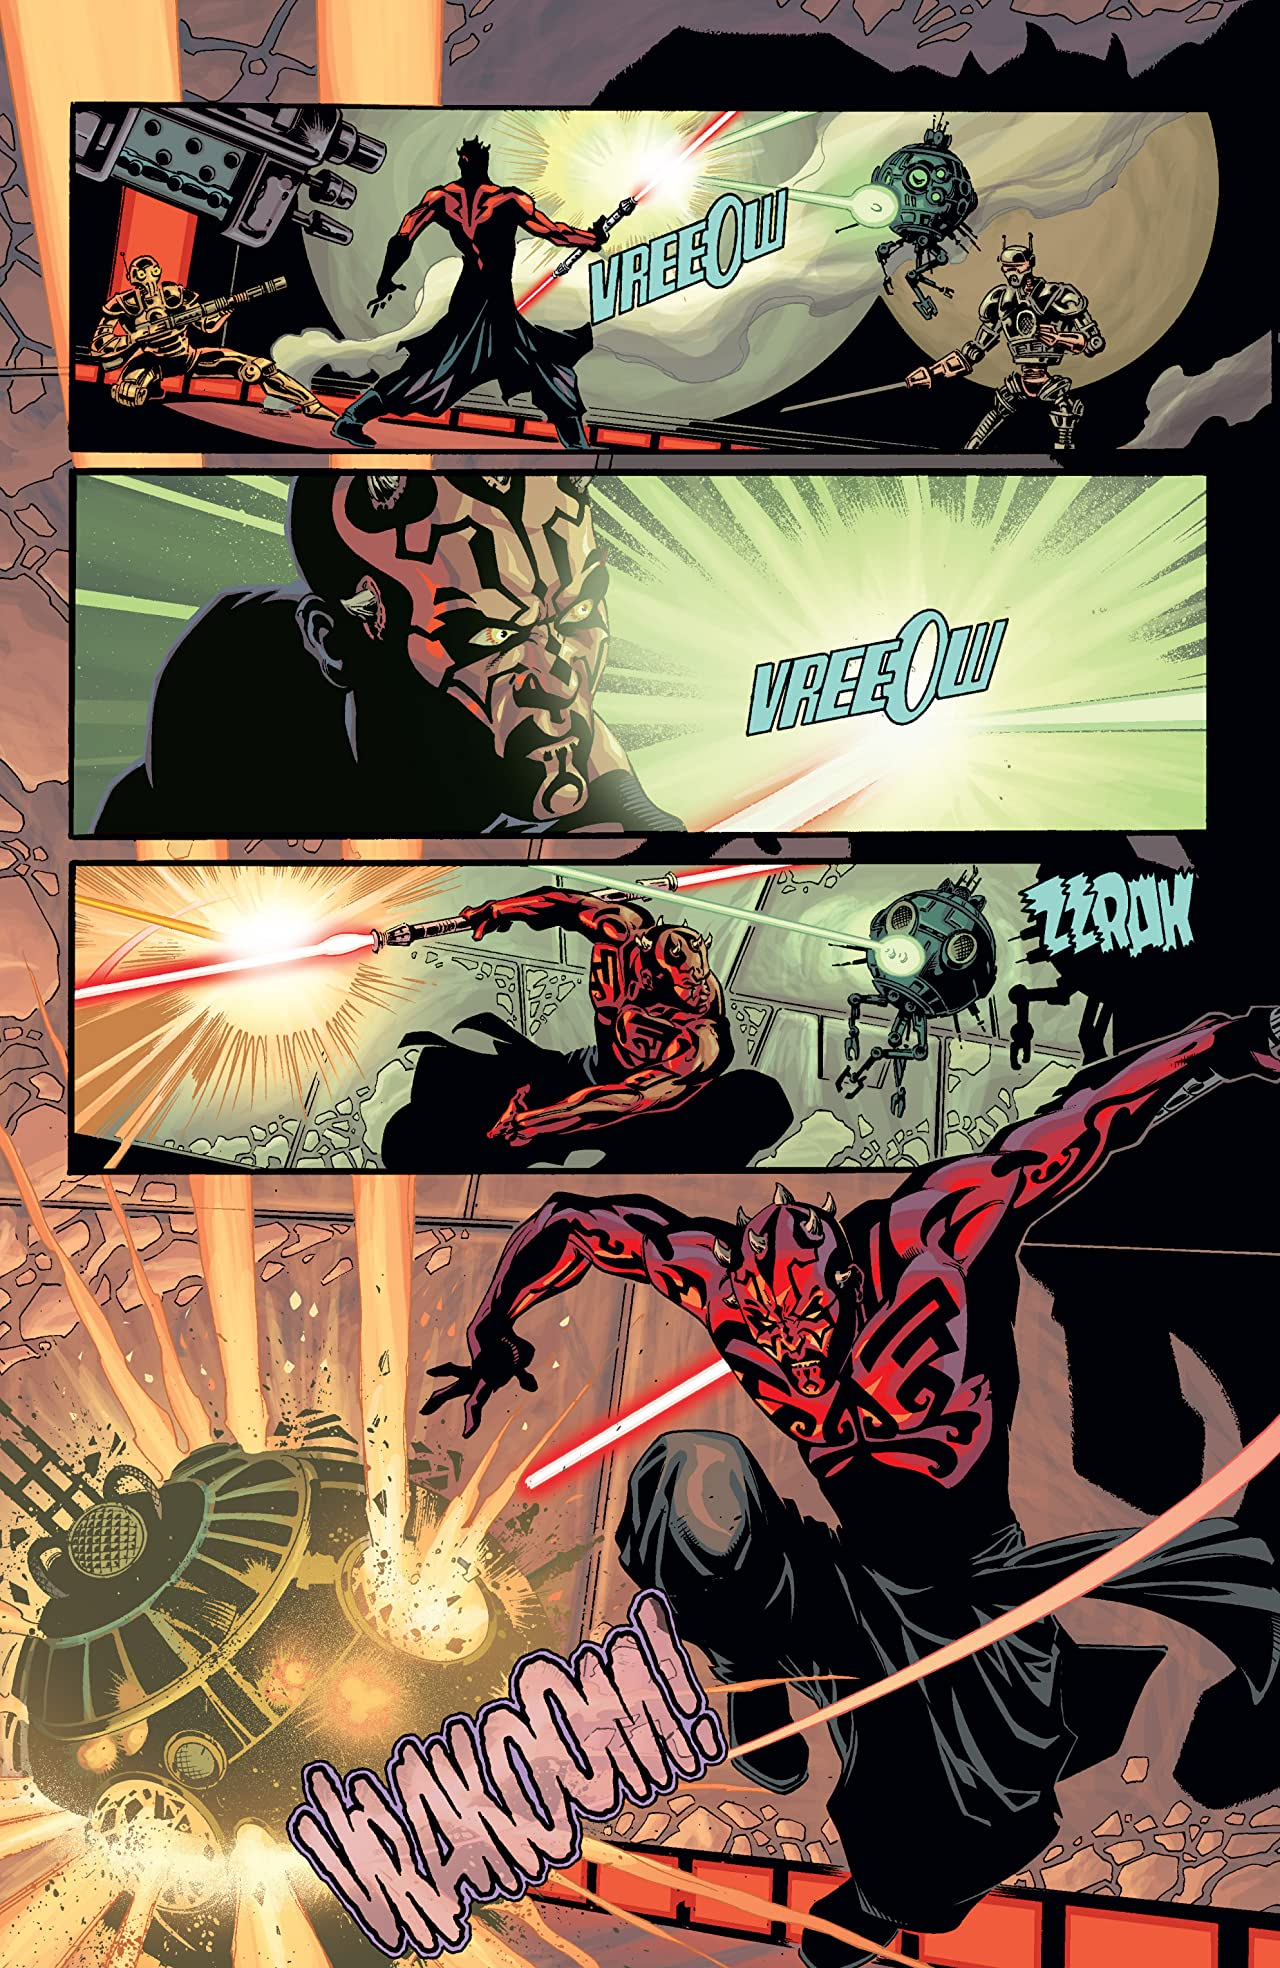 Star Wars: Darth Maul (2000) #1 (of 4)